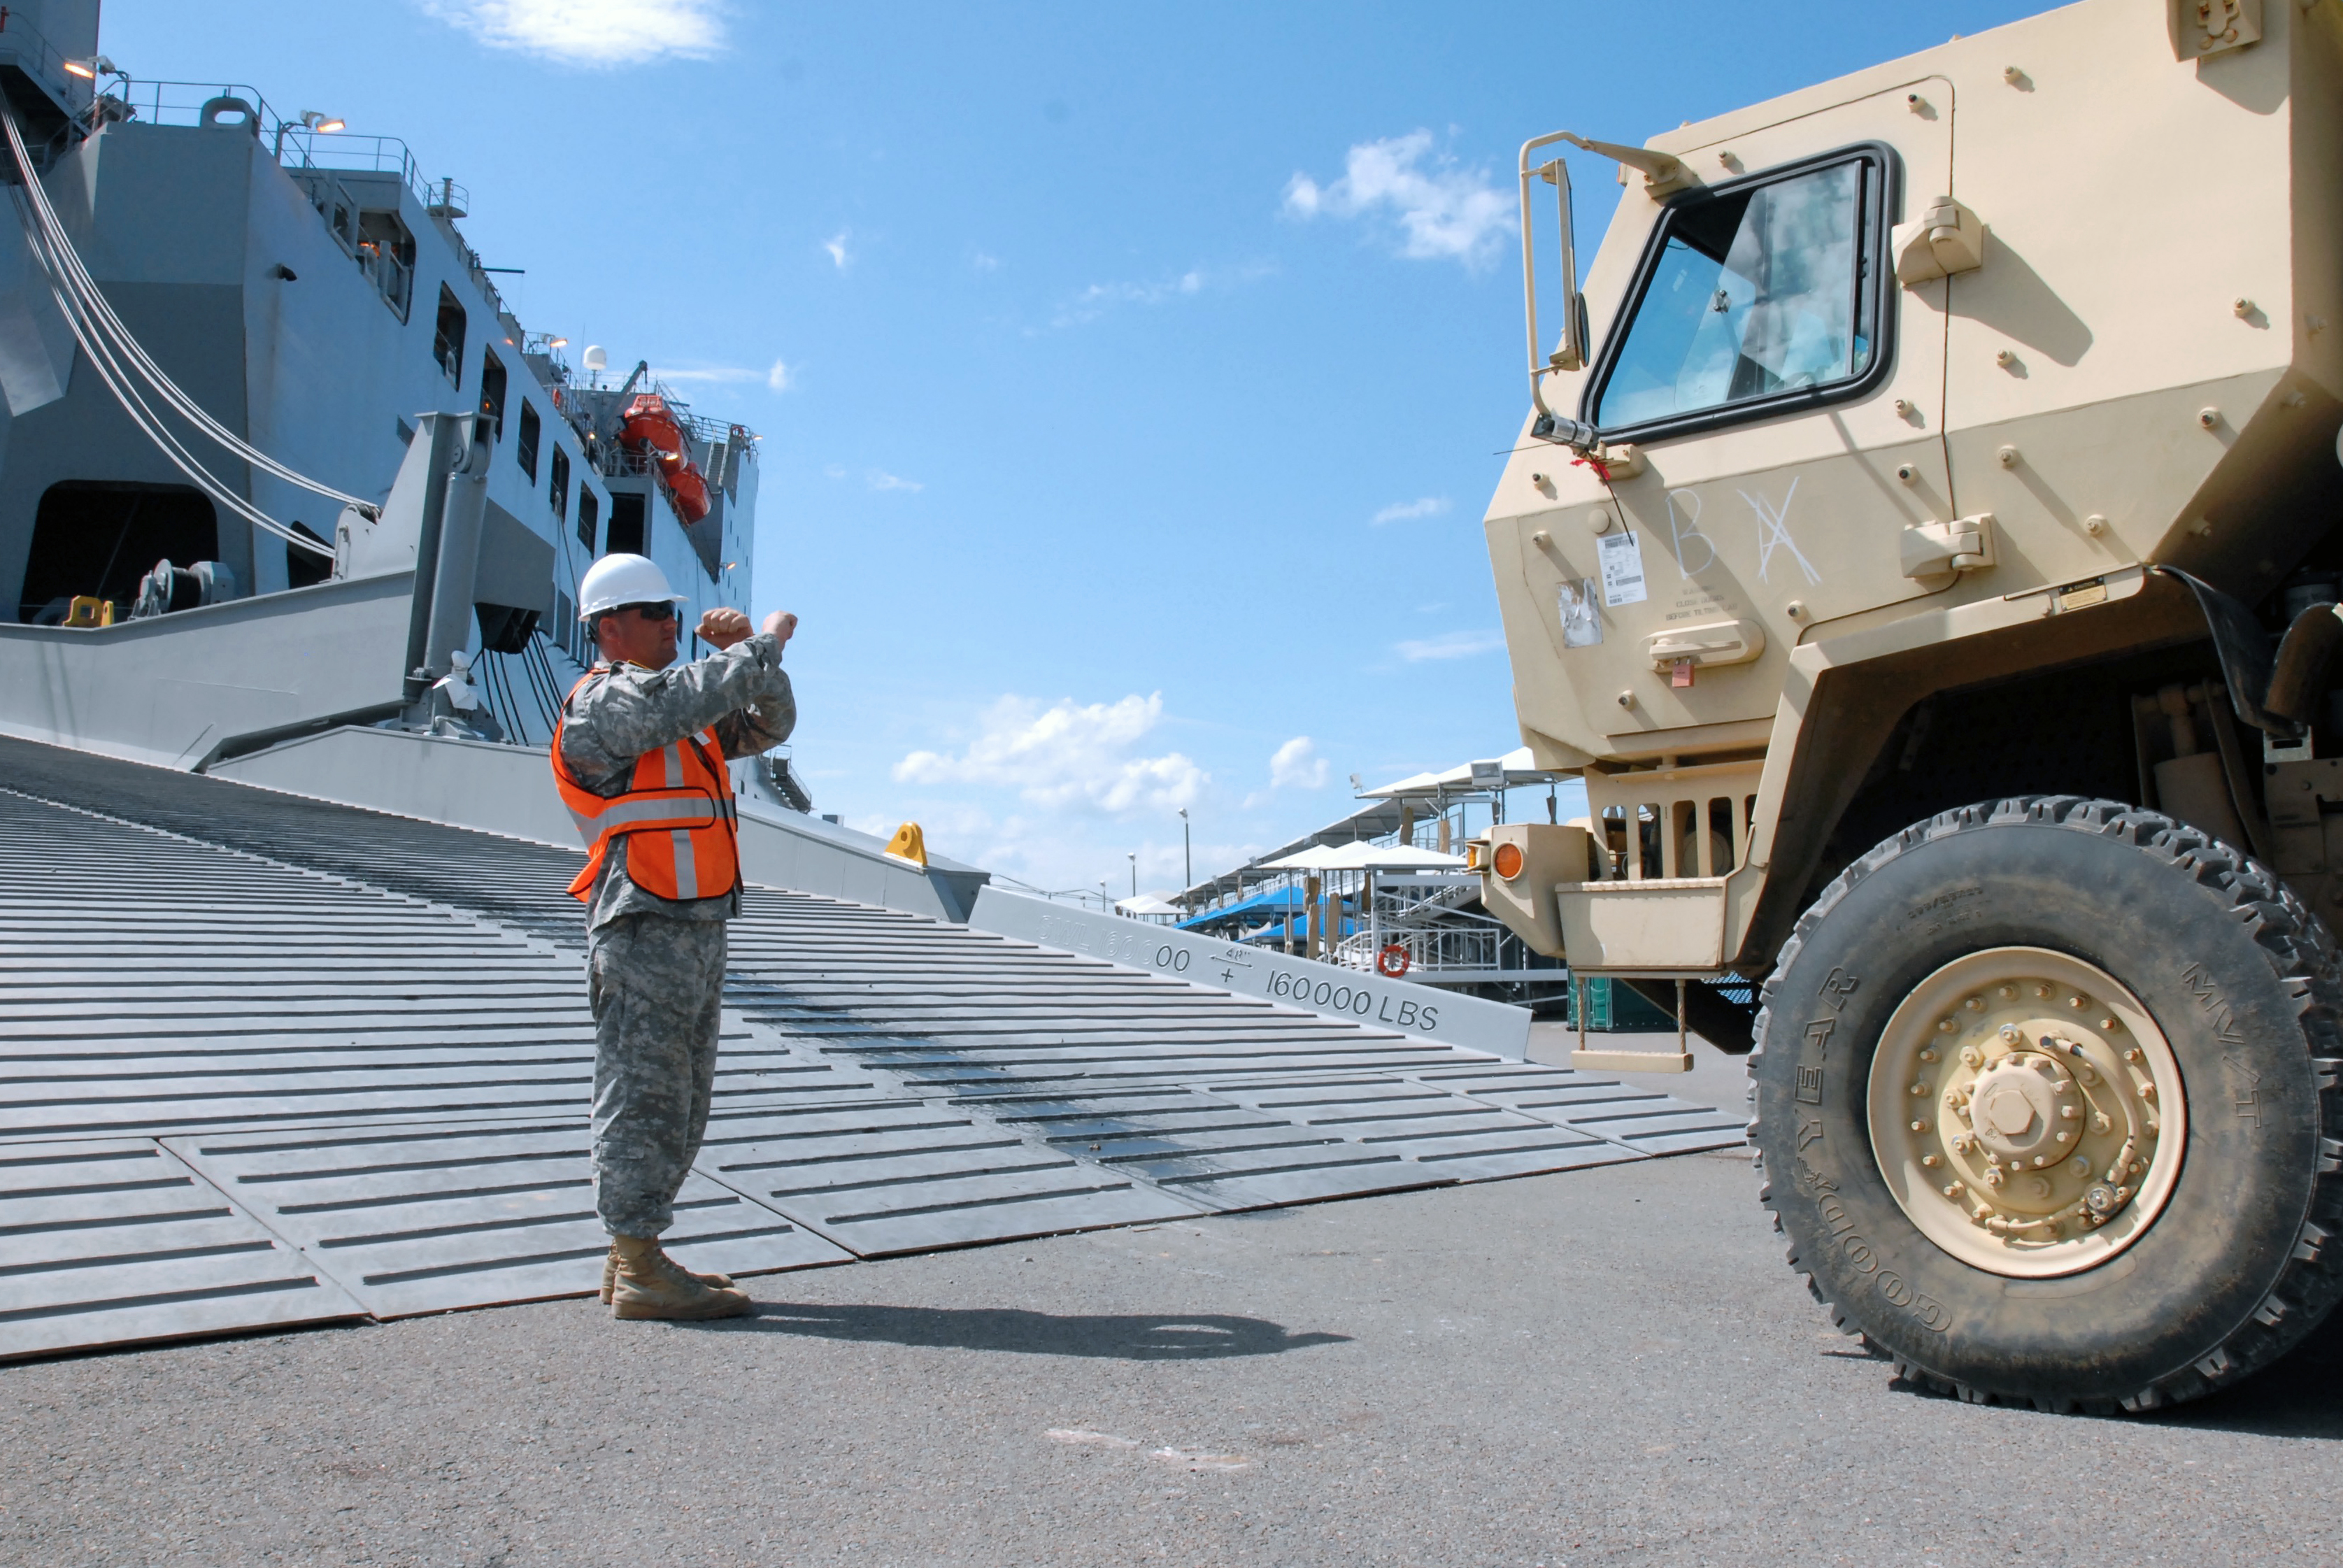 U.S. Army Staff Sgt. Craig Woolley guides one of the last pieces of equipment to be loaded onto the Navy's Military Sealift Command ship, the USNS Benavidez. (John Orrell/U.S. Army)